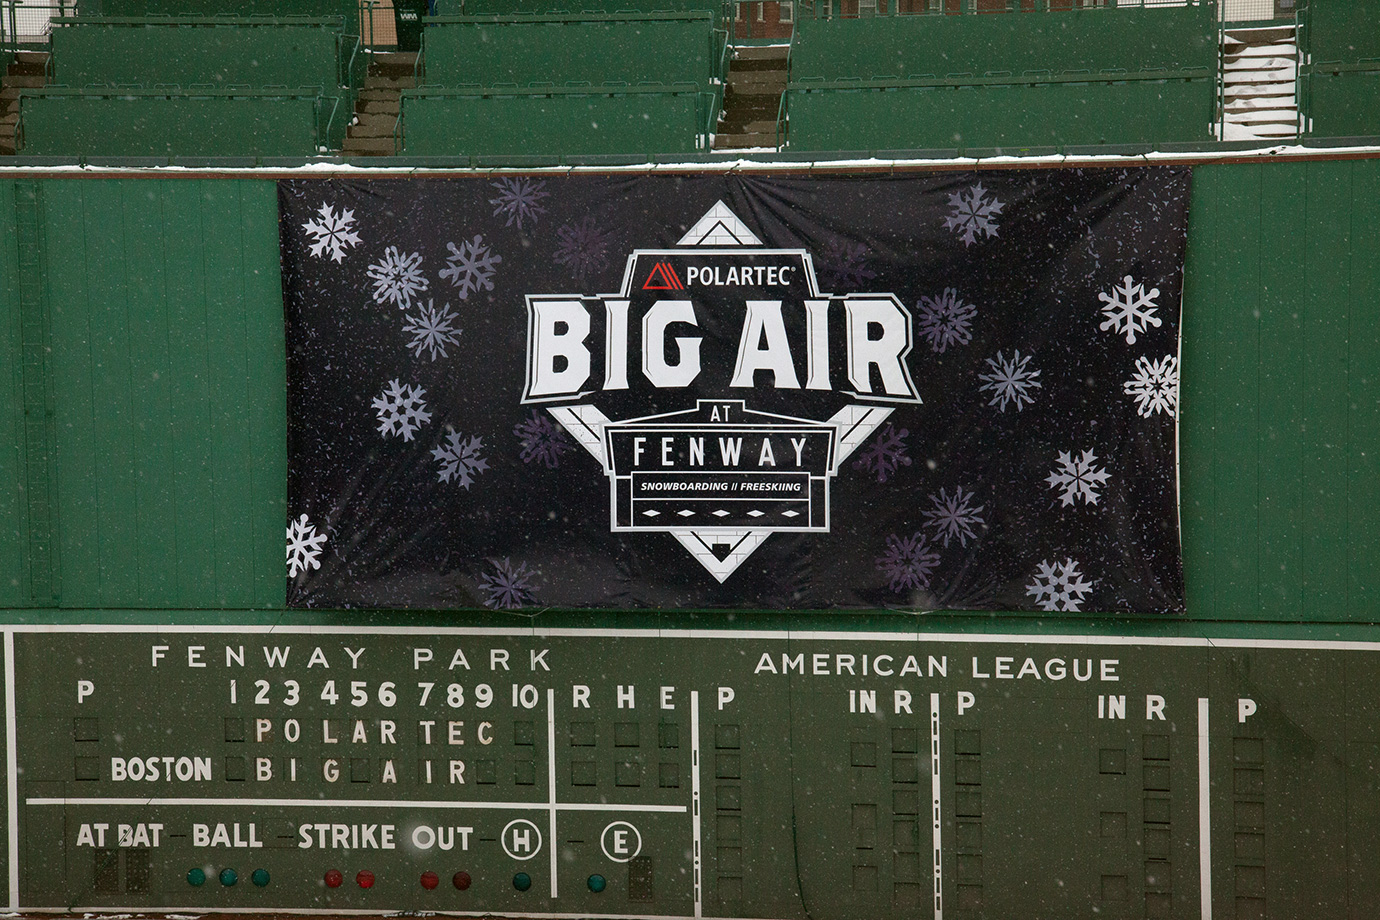 Fenway Park's Green Monster dressed up for the Polartec Big Air competition.